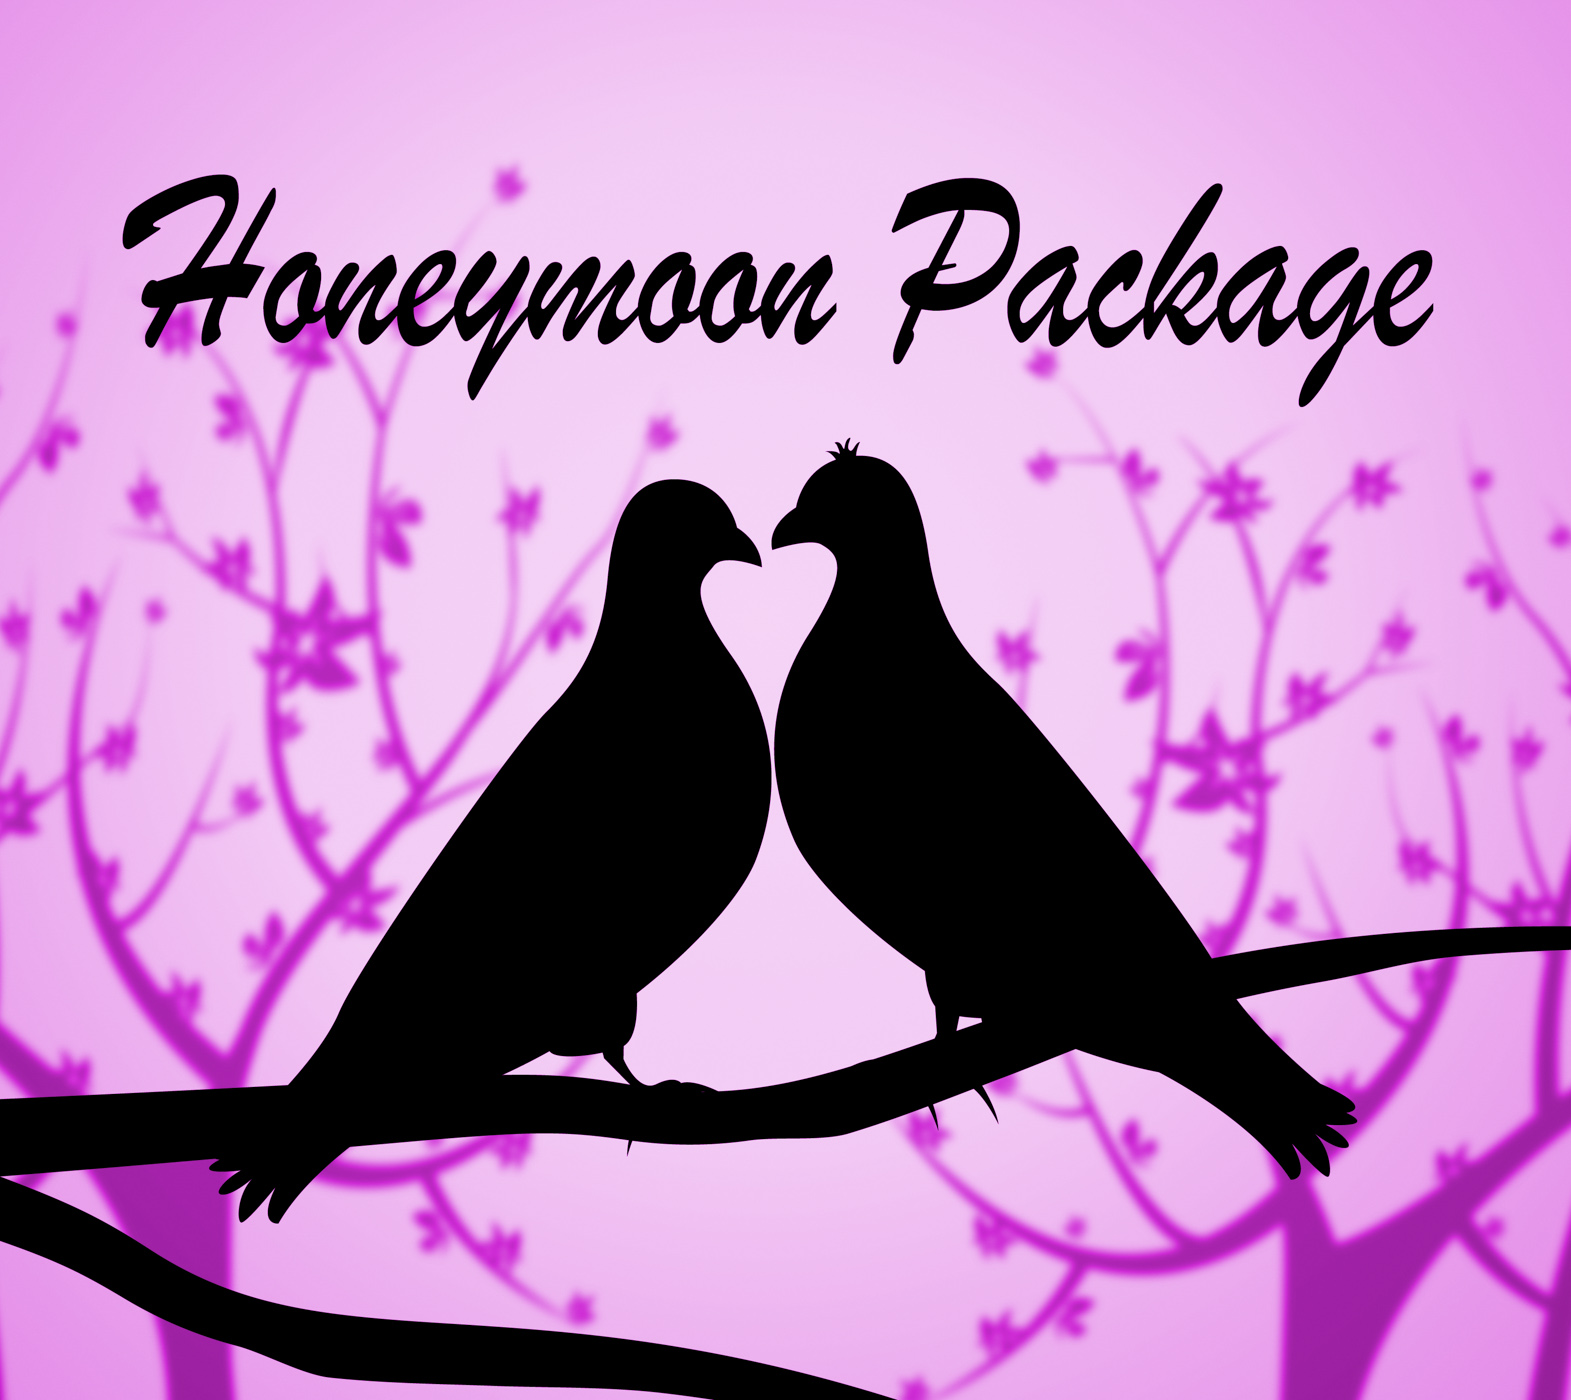 Honeymoon package shows all inclusive and destinations photo